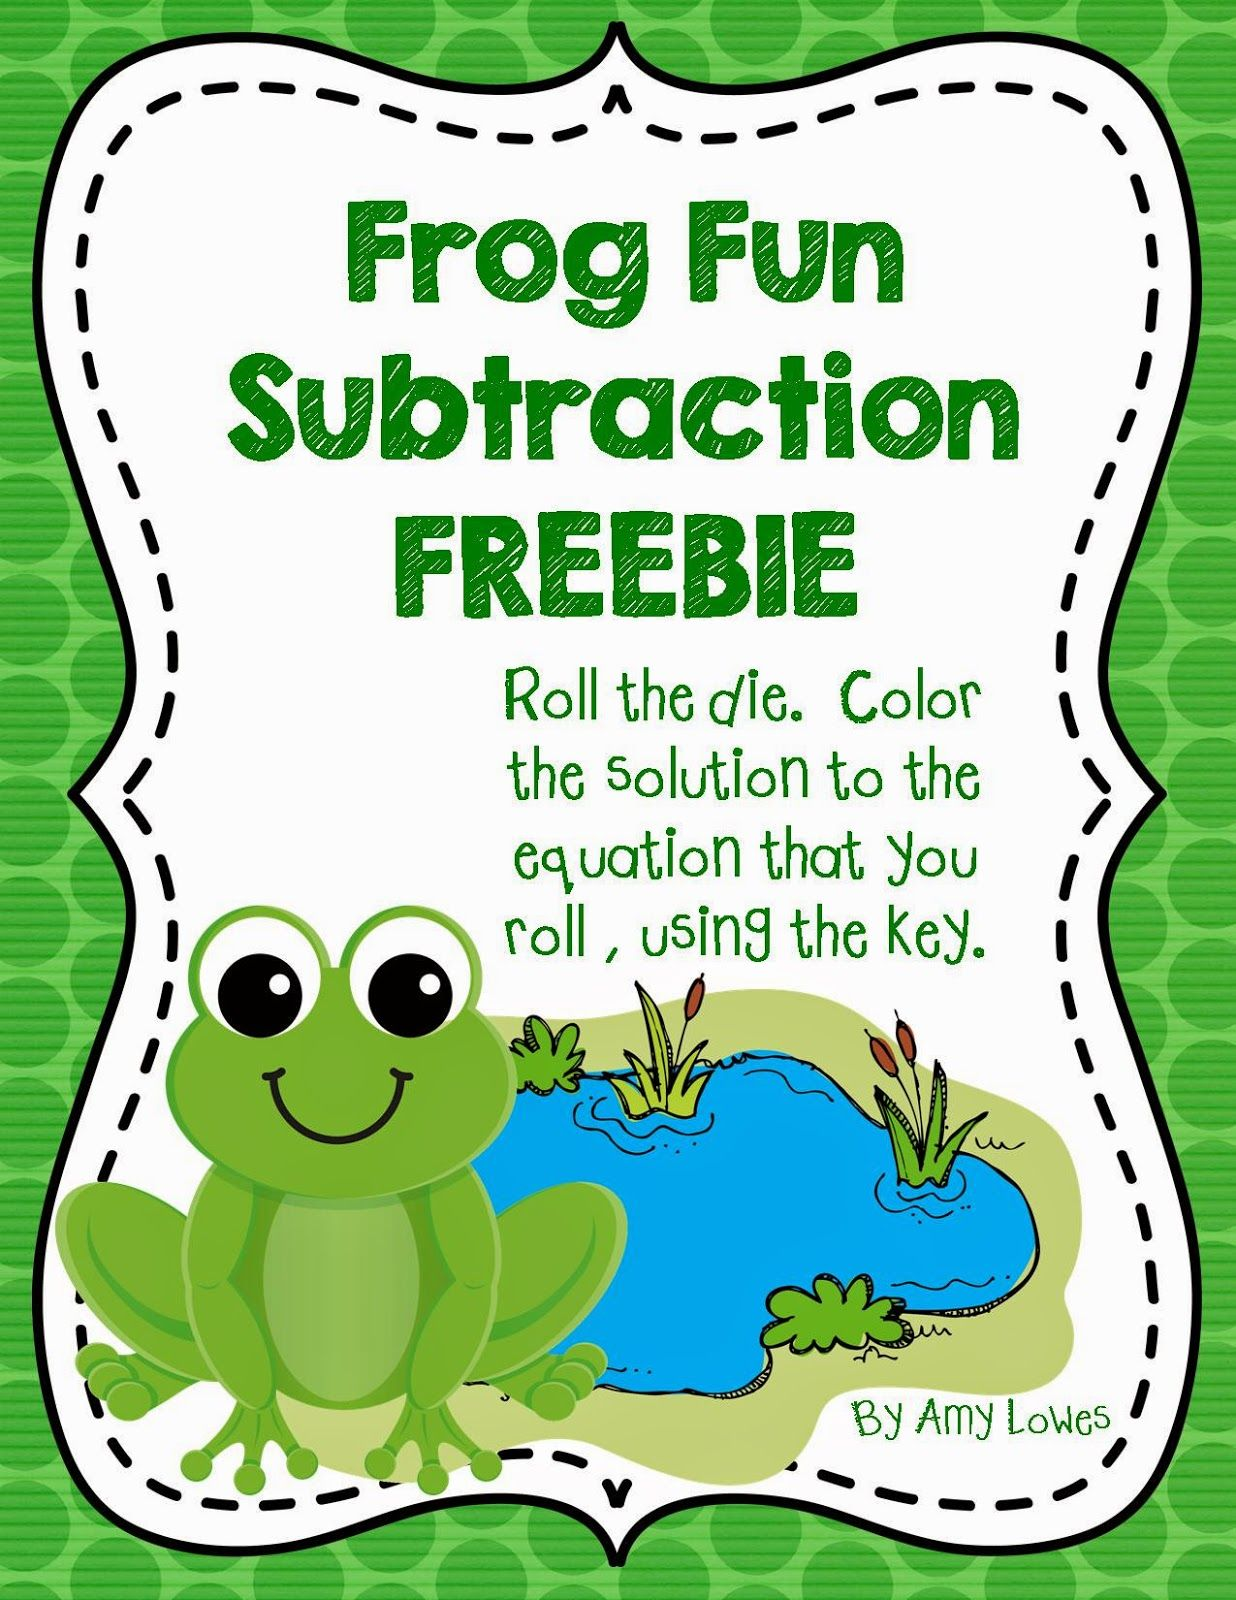 Frog Fun Subtraction FREEBIE from Amy Lowes\' TpT store! | TpT FREE ...